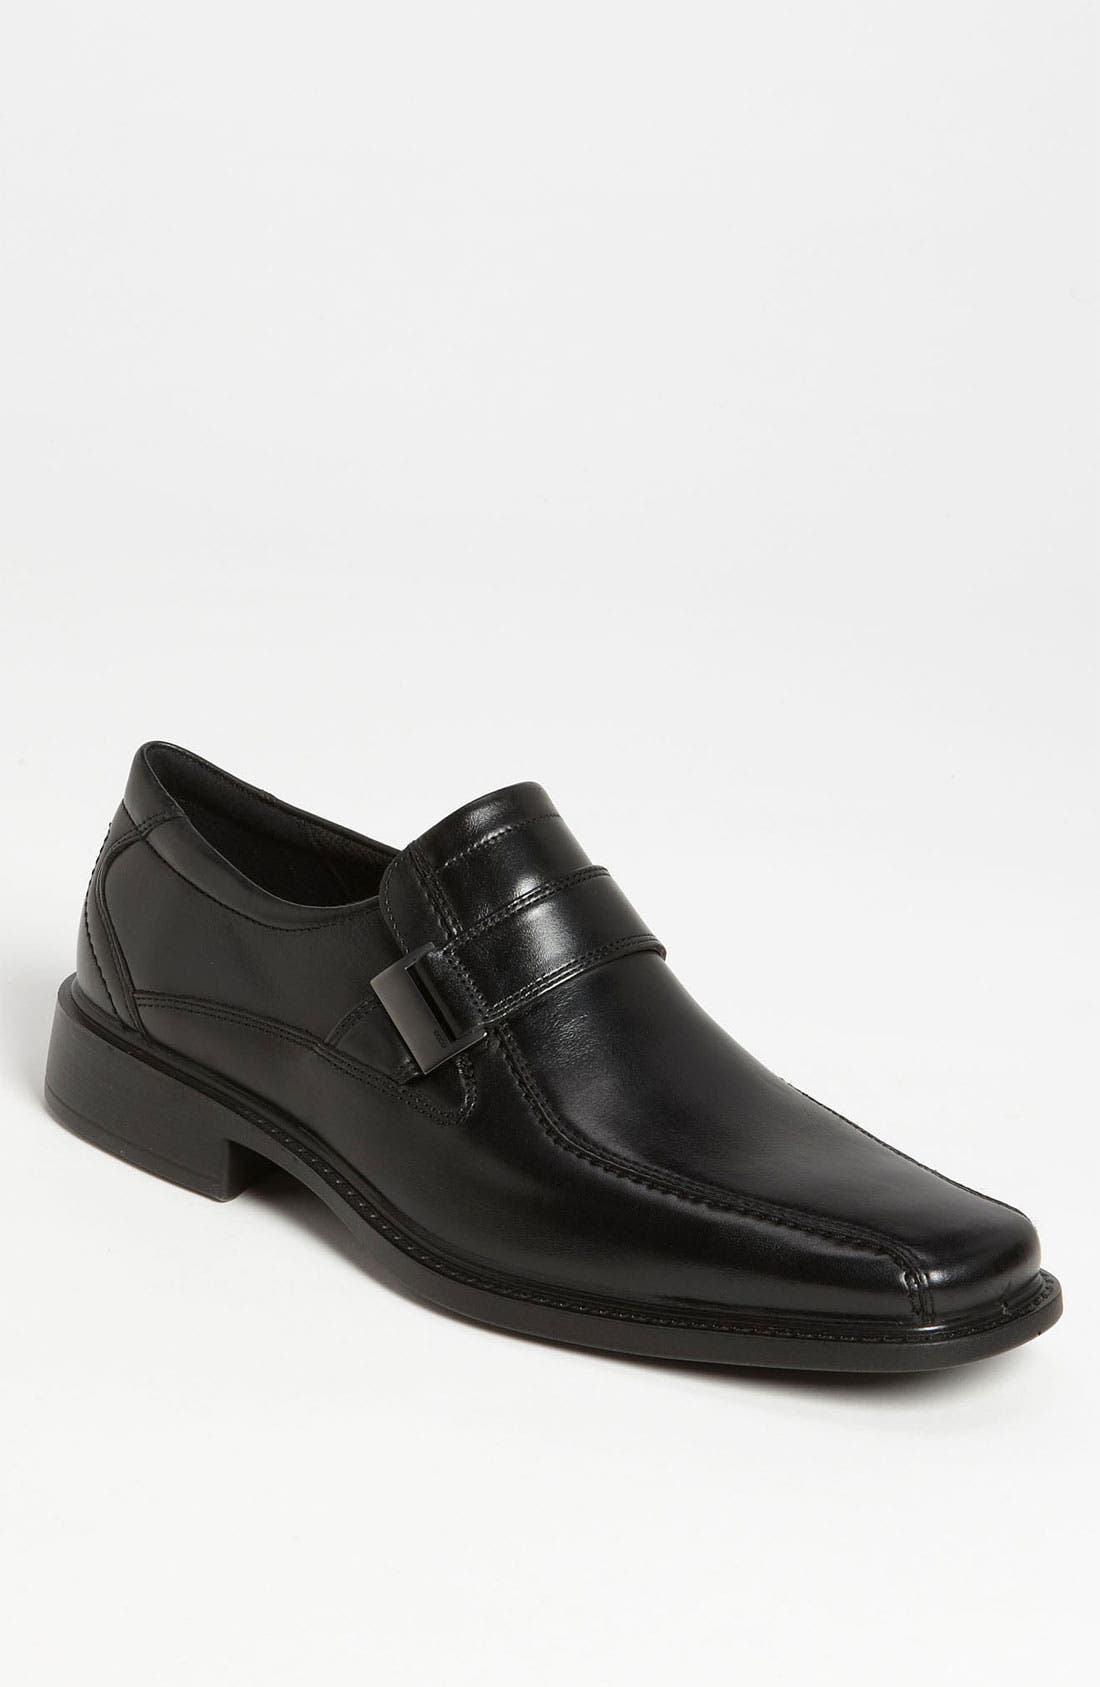 'New Jersey' Venetian Loafer,                         Main,                         color, 001